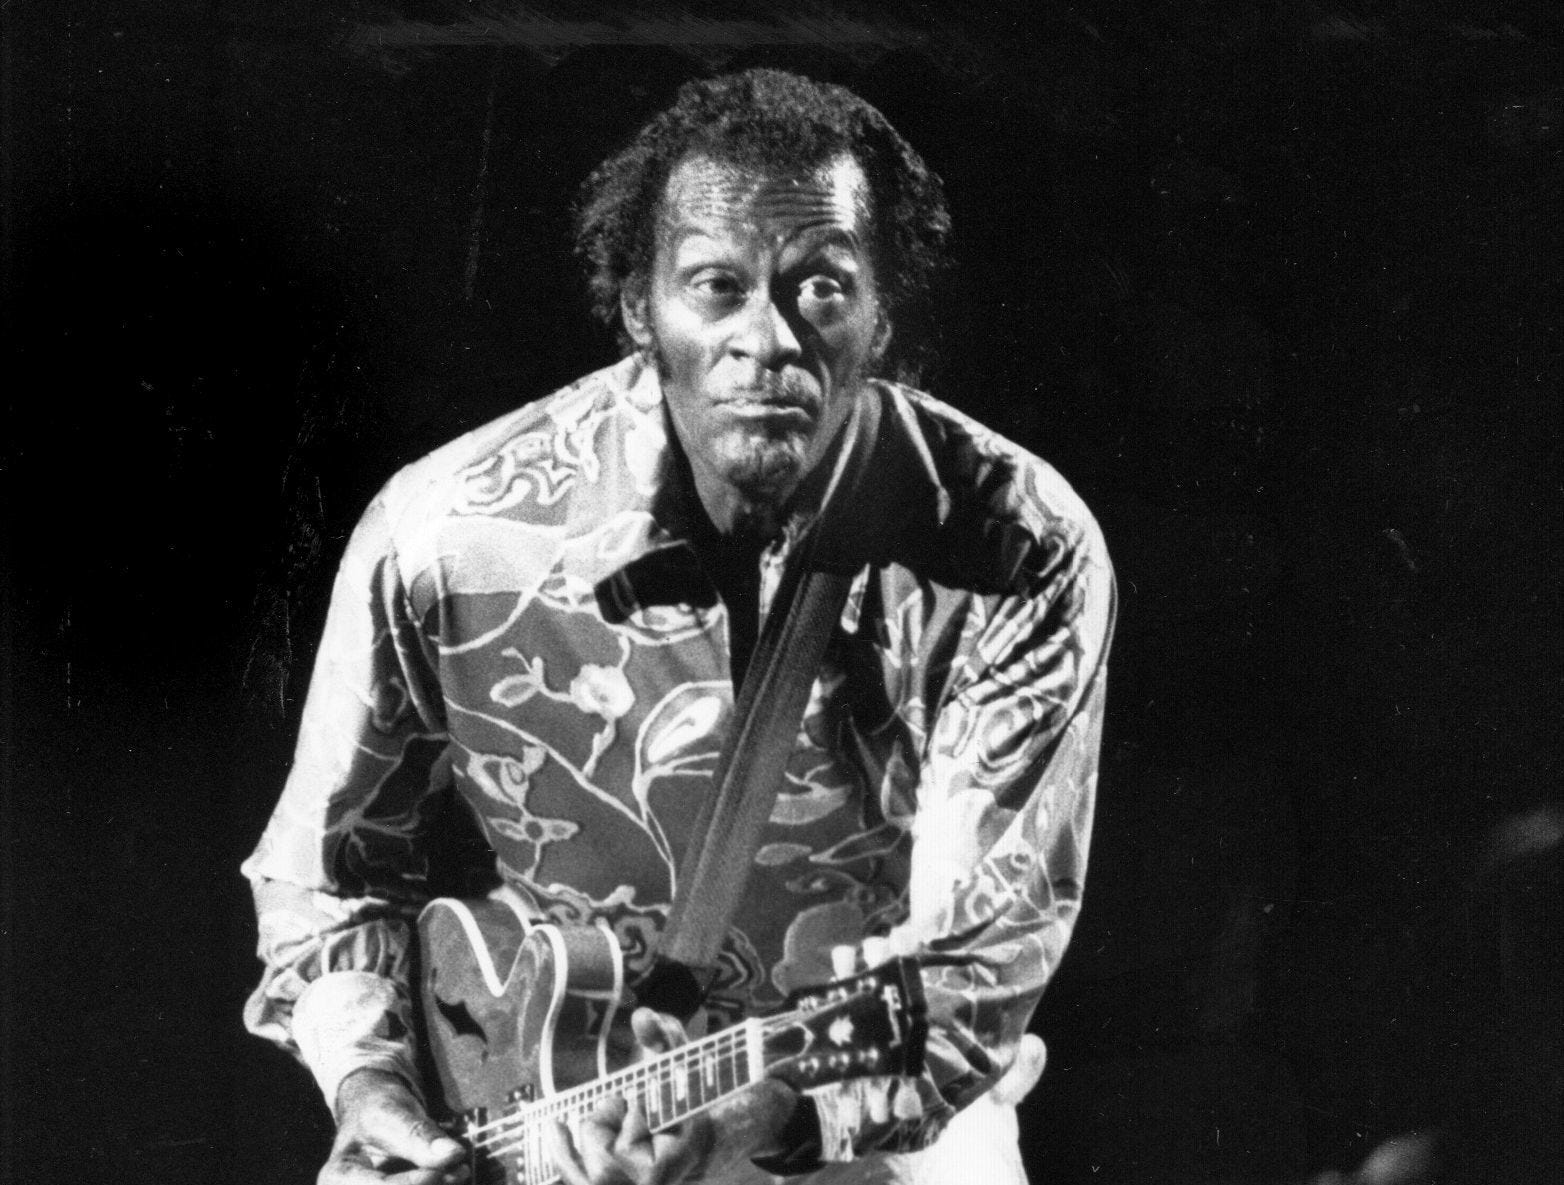 Chuck Berry executes his signature duckwalk during a 1990 performance at Deer Creek Music Center.